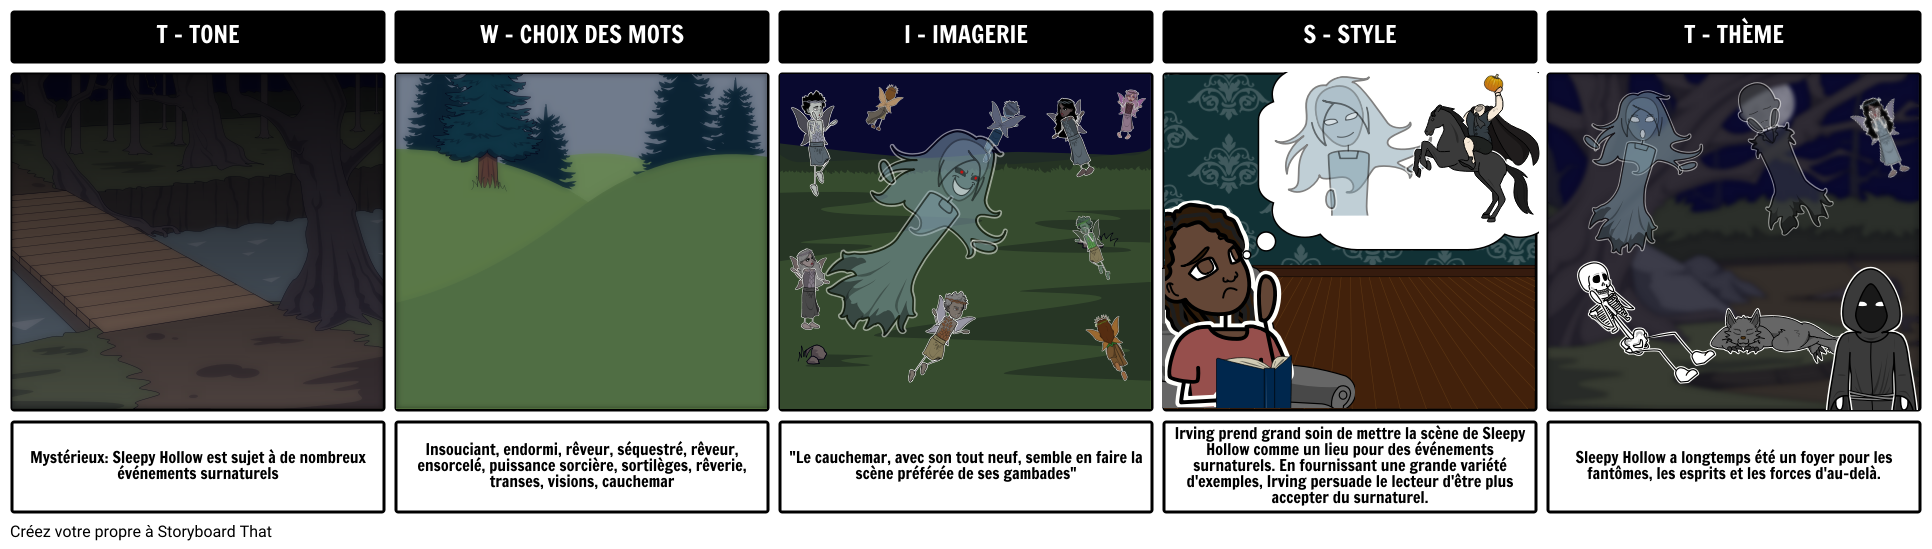 La Légende de Sleepy Hollow TWIST